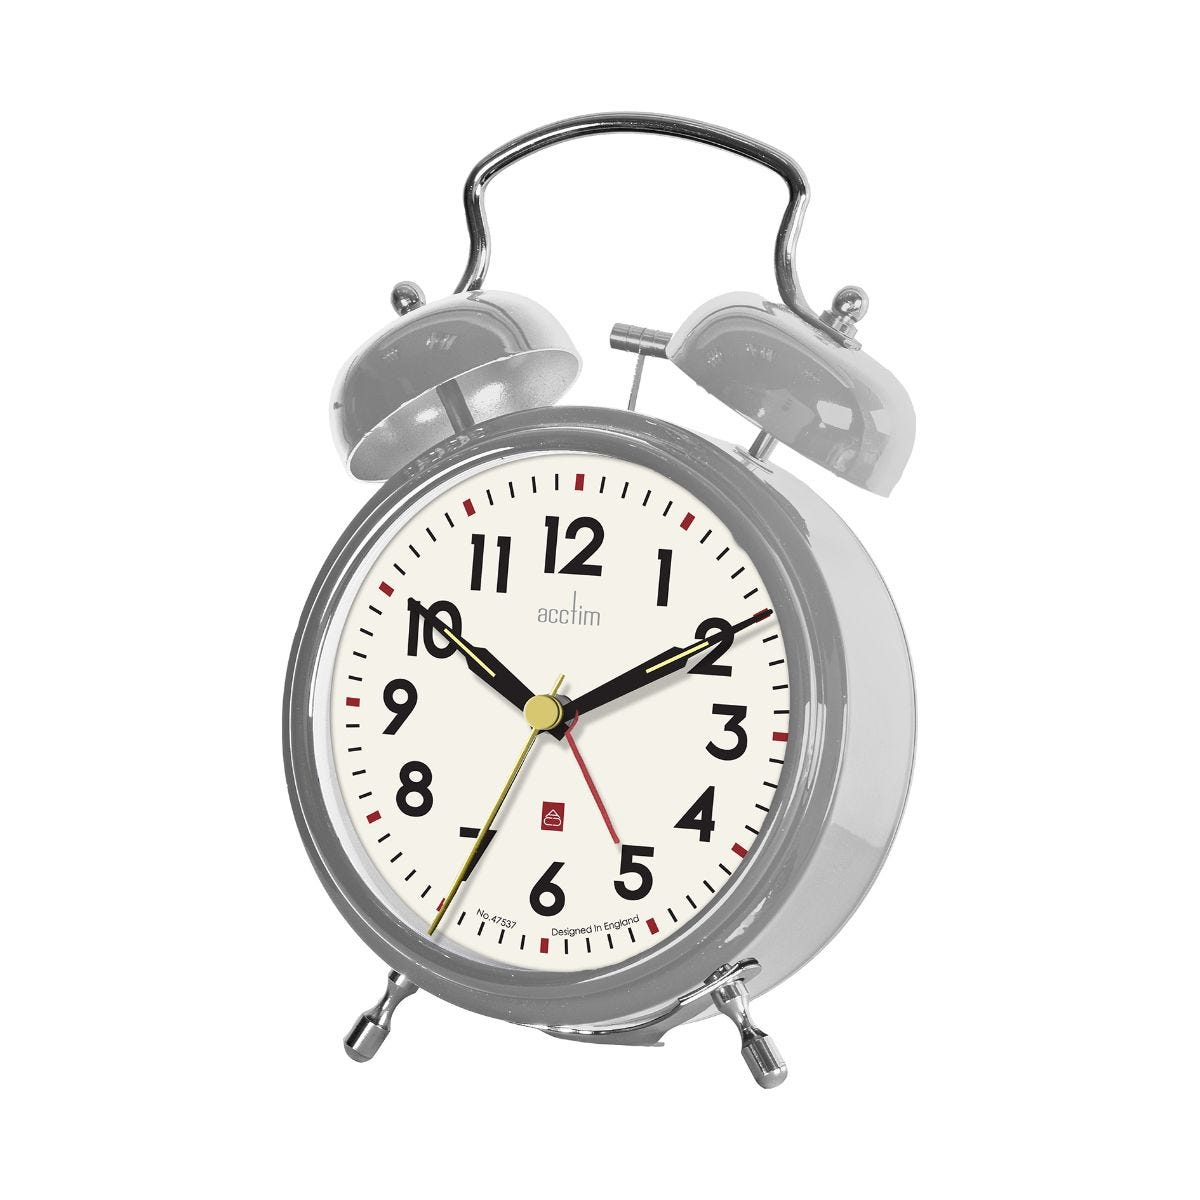 Image of Acctim Rover Bell Alarm Clock, Silver